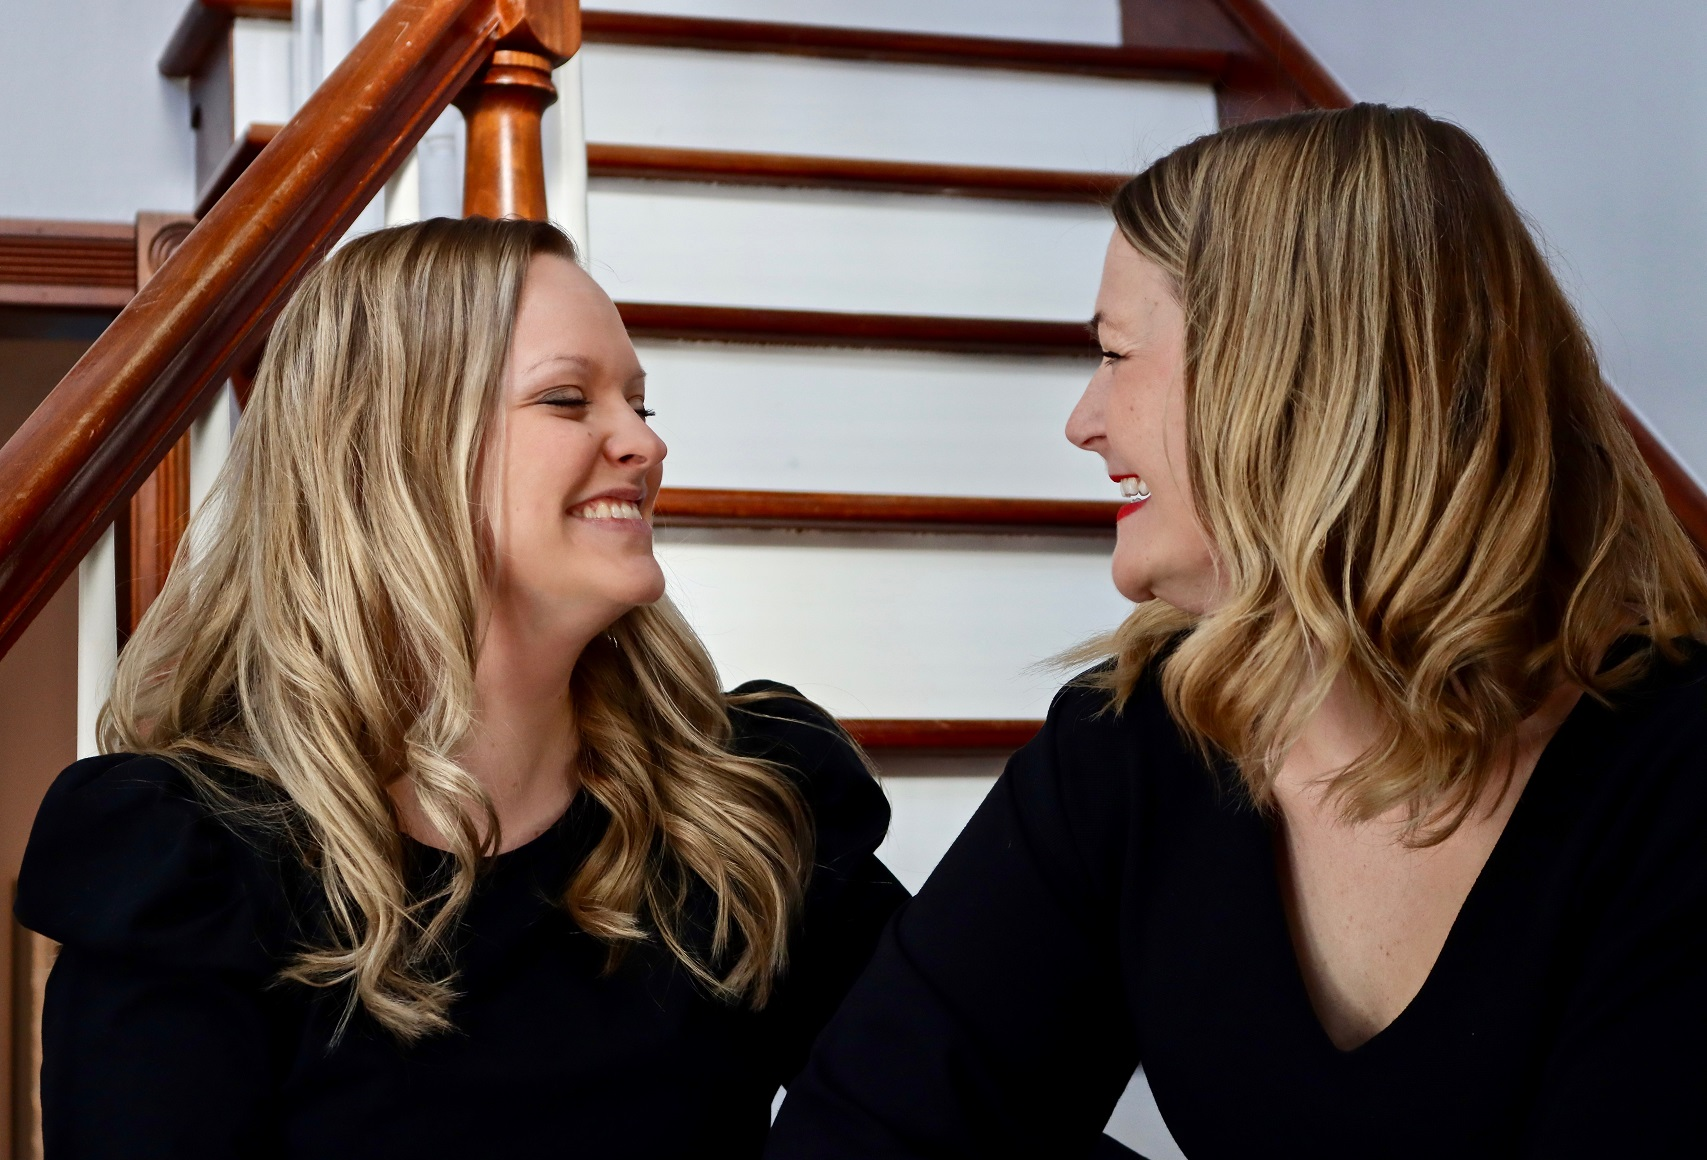 Too Strong for Who? blog featured image. Photo of Jessie and her sister sitting on staircase and sharing a laugh.